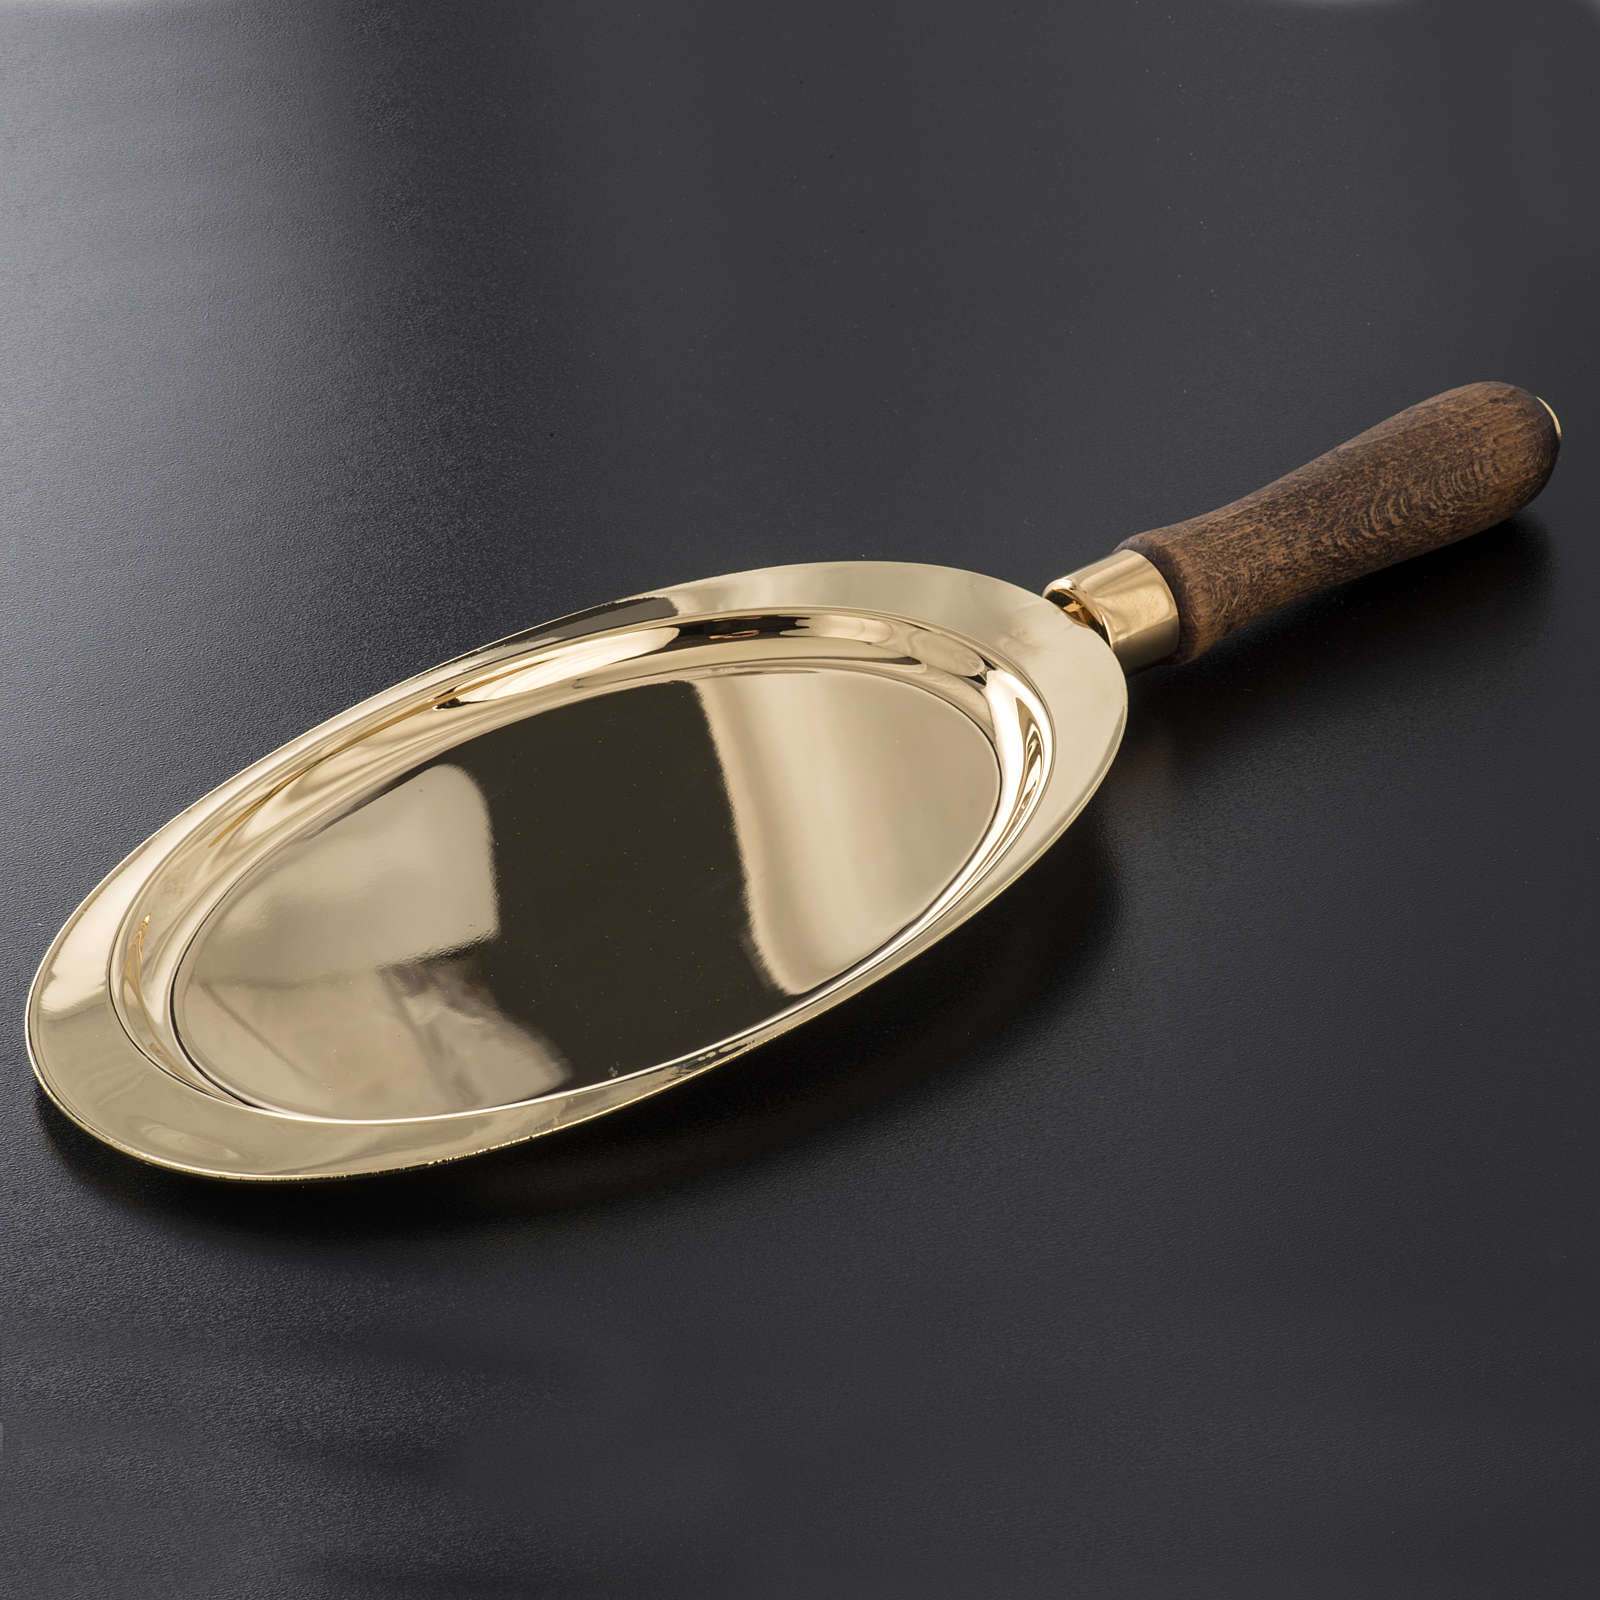 Communion plate in brass with wooden handle 3